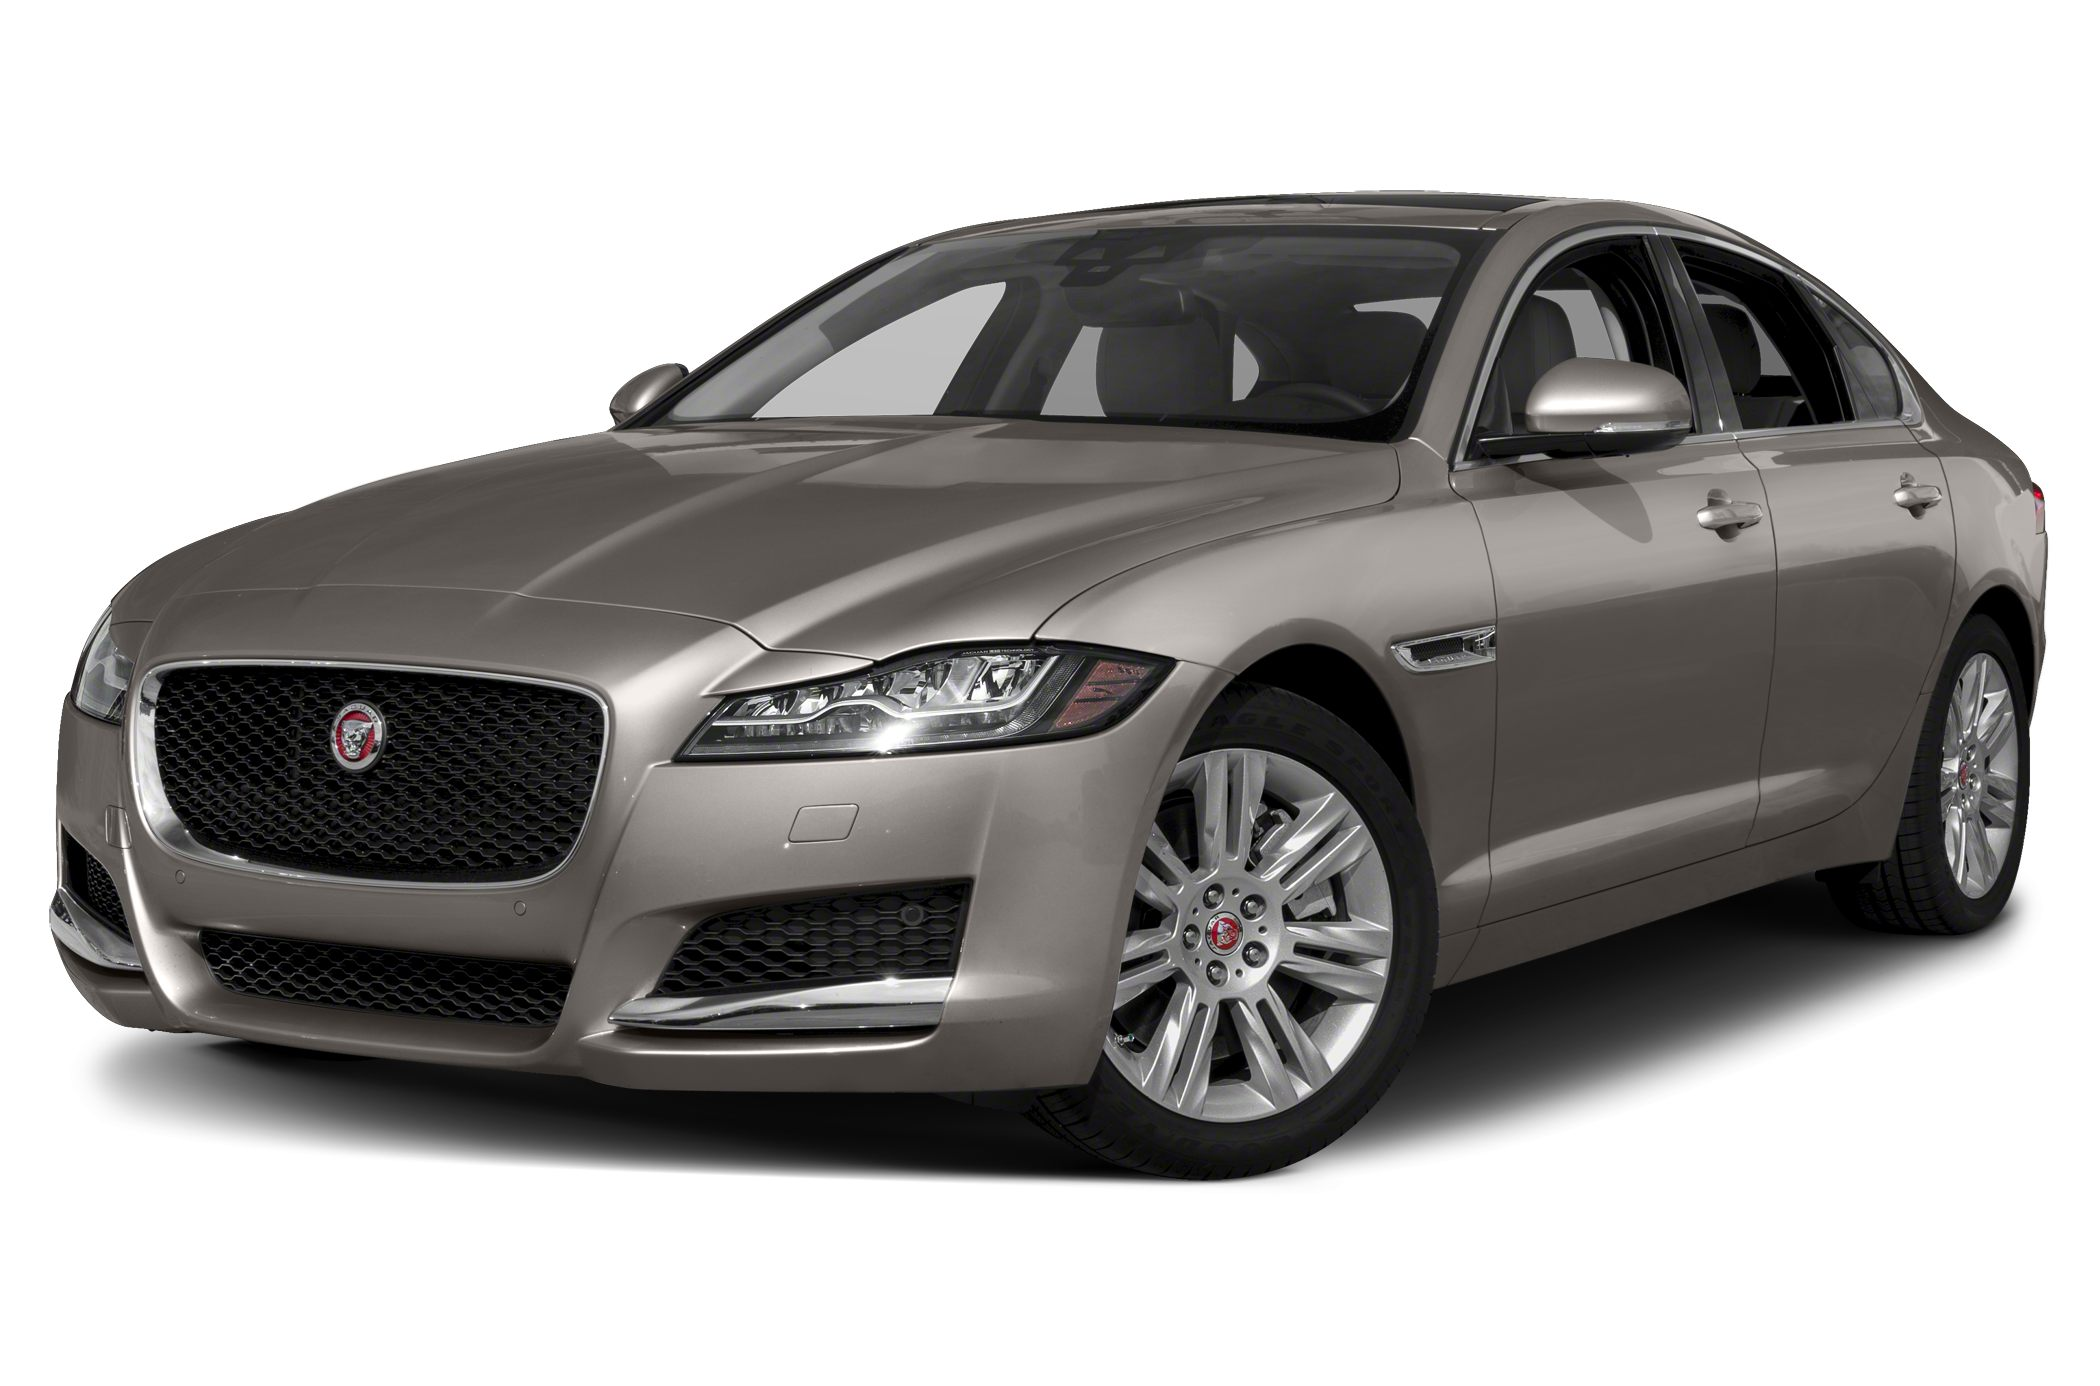 2016 jaguar xf review autoblog. Black Bedroom Furniture Sets. Home Design Ideas